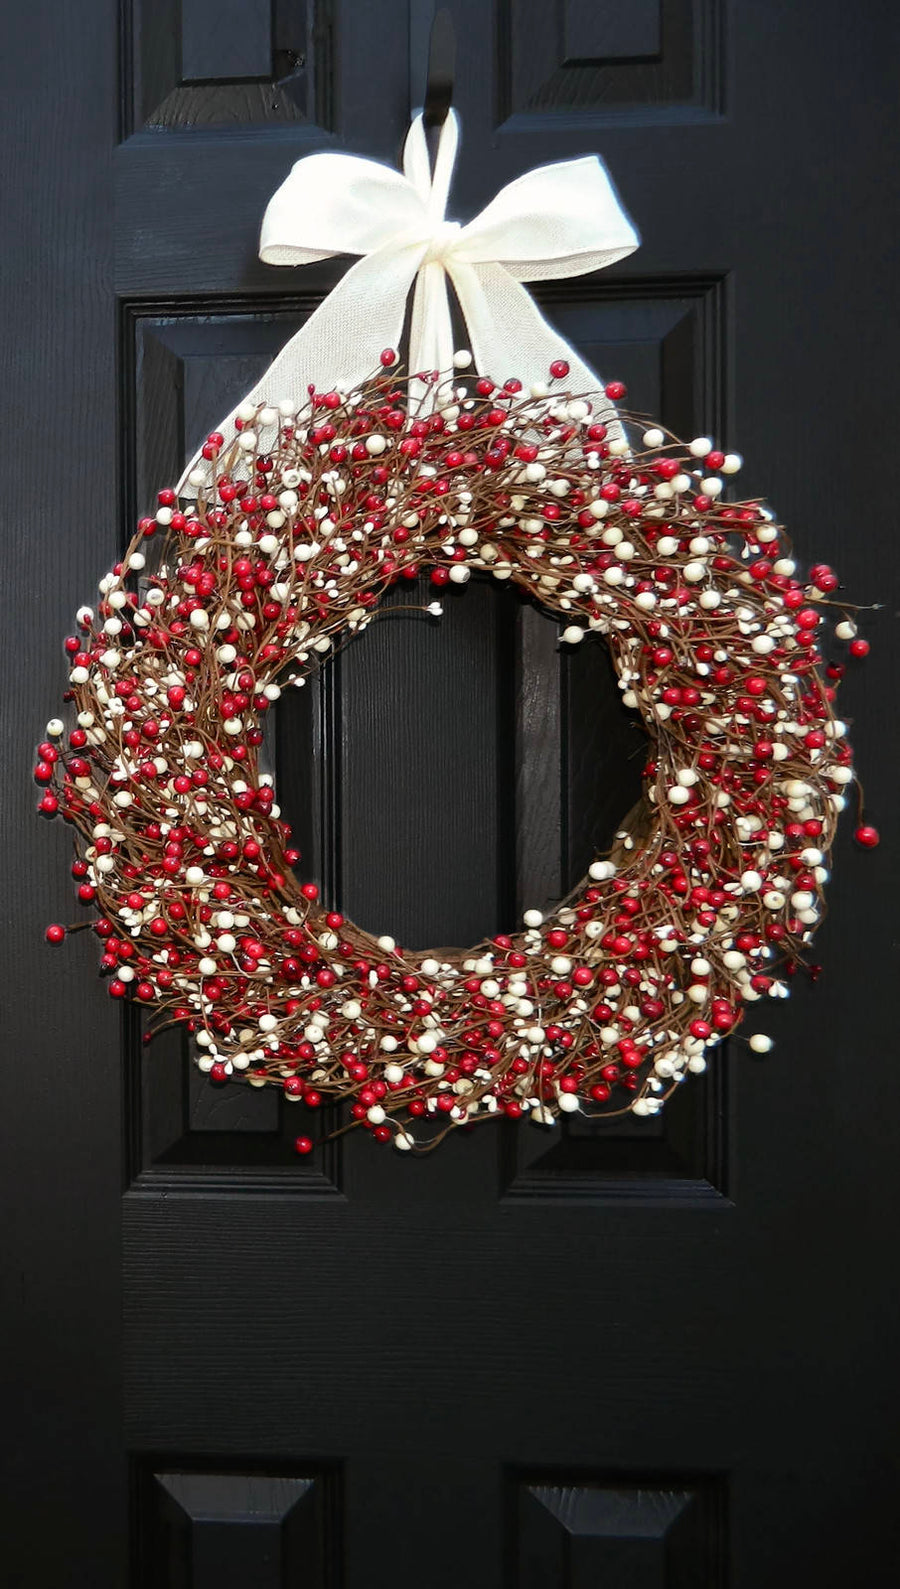 Red and Cream Berry Wreath with Bow